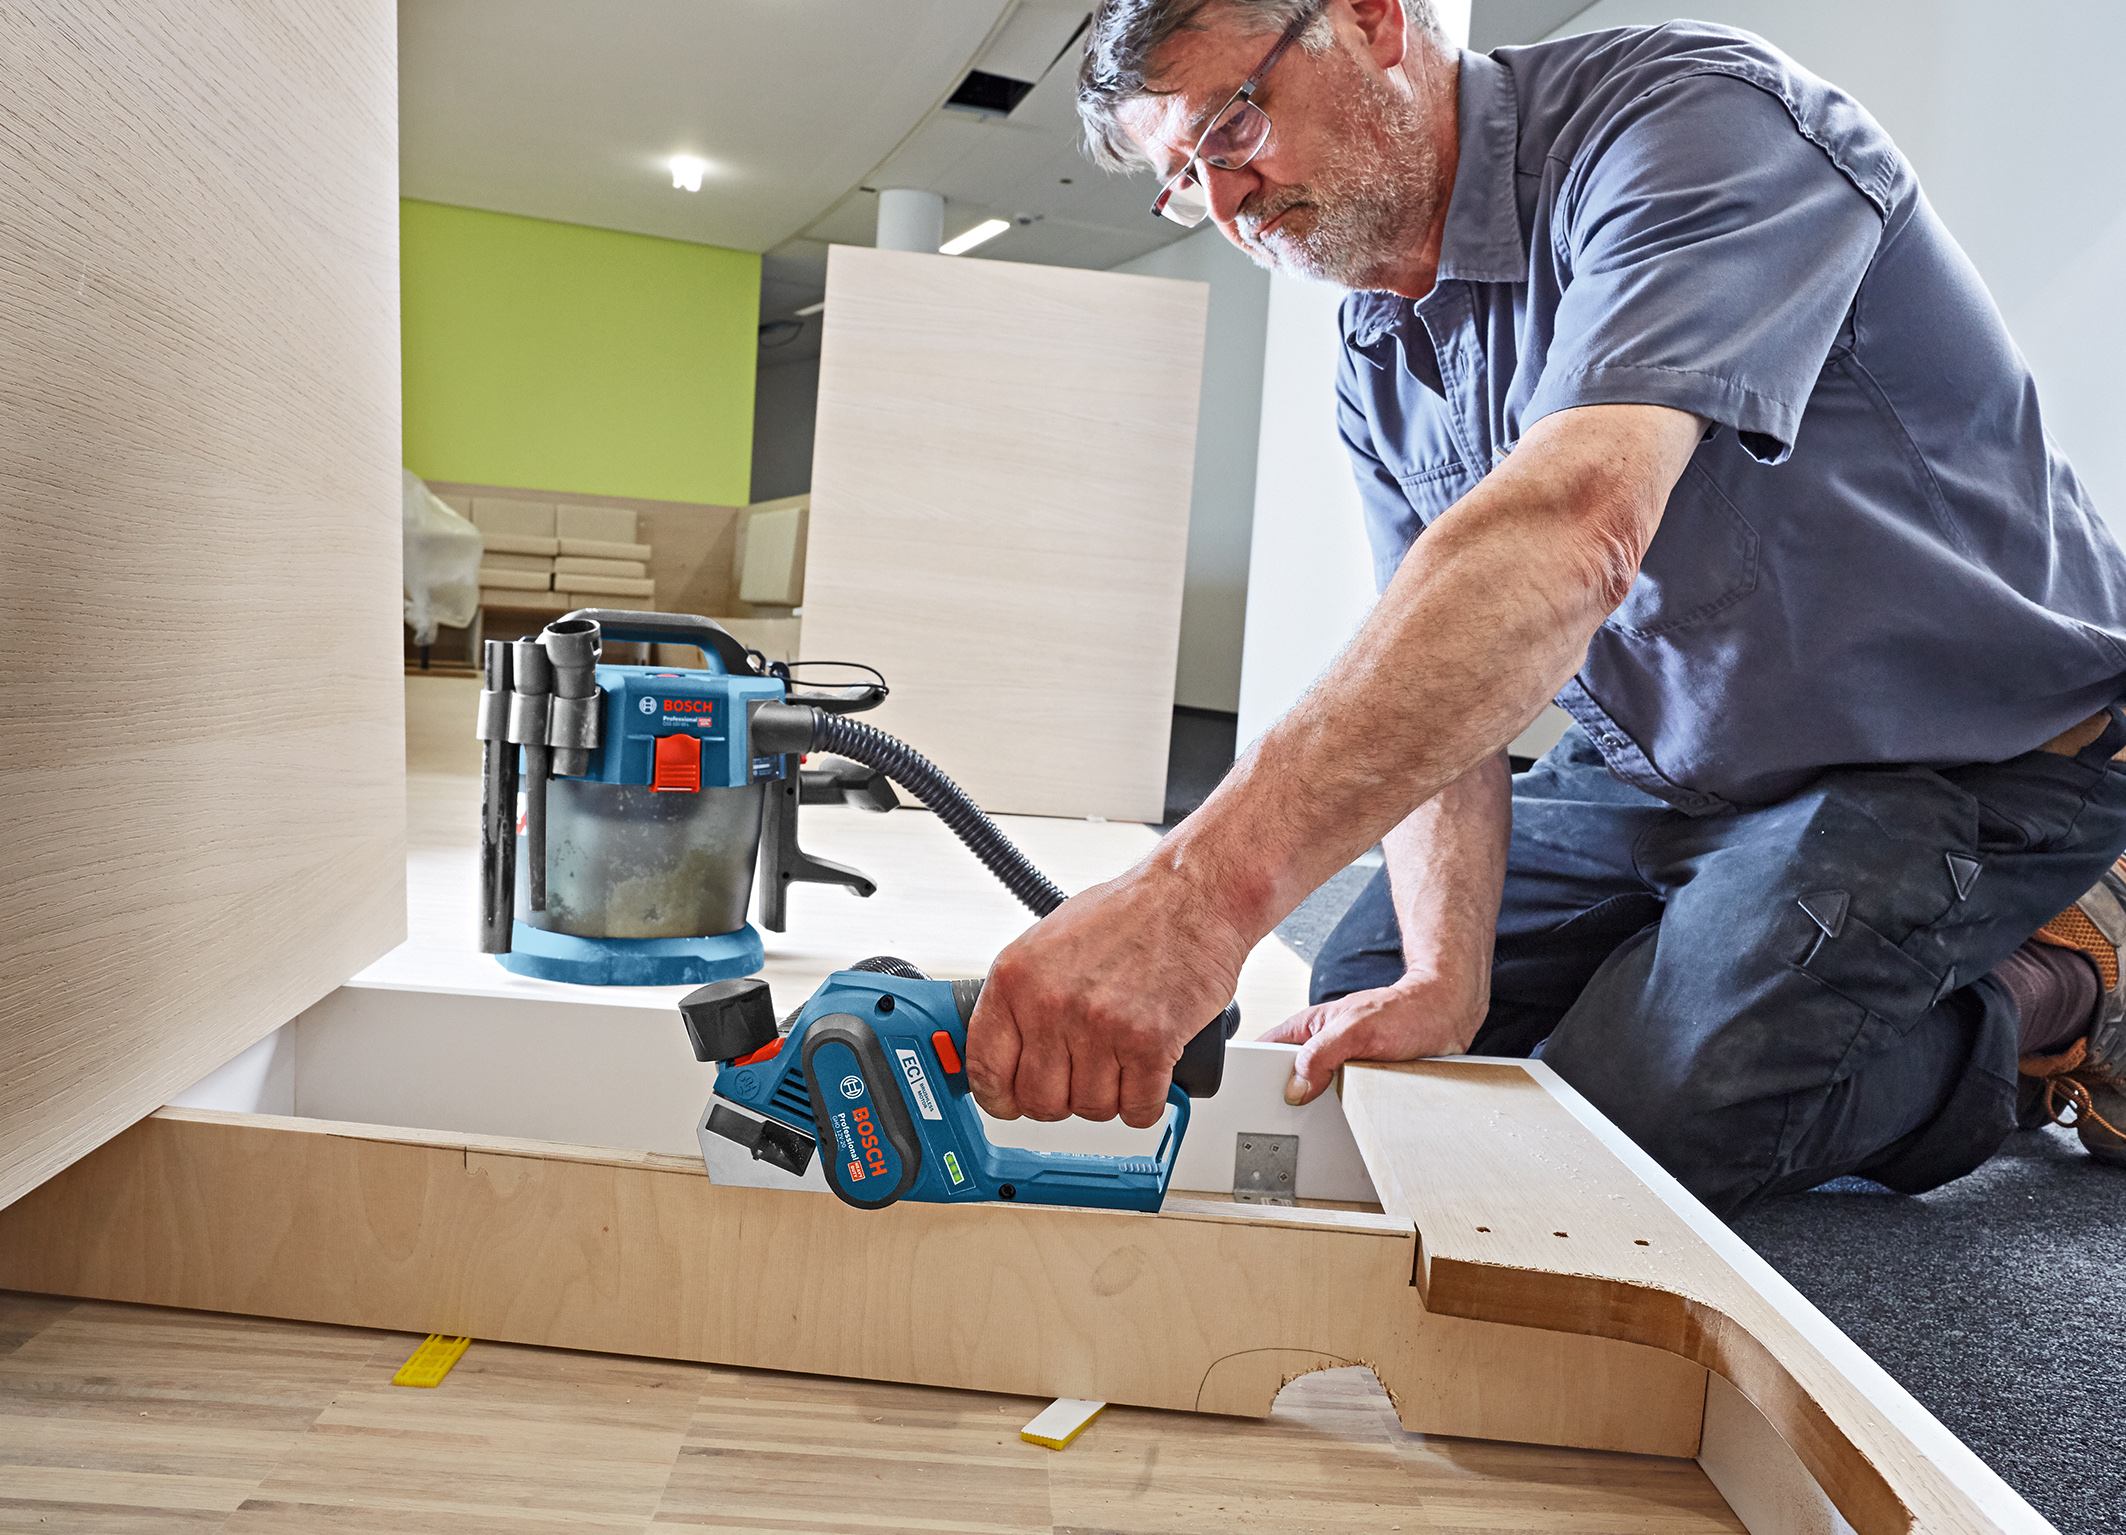 Convenient and powerful cordless planer: the GHO 12V-20 Professional from Bosch